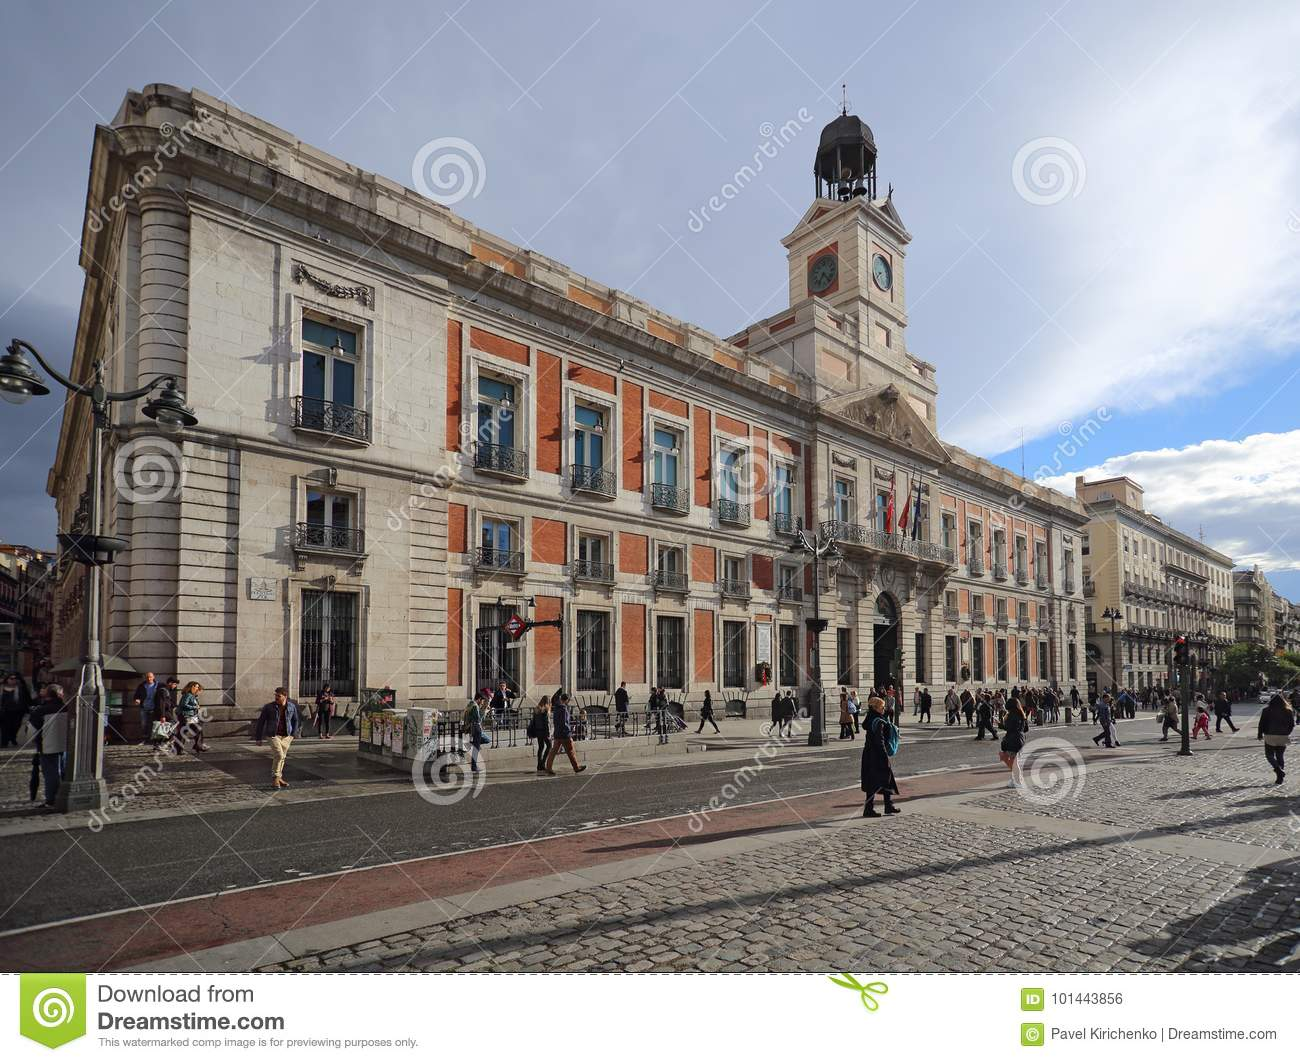 Real Casa de Correos Royal Post office at Puerta del Sol, Madrid, Spain. This building is at the m